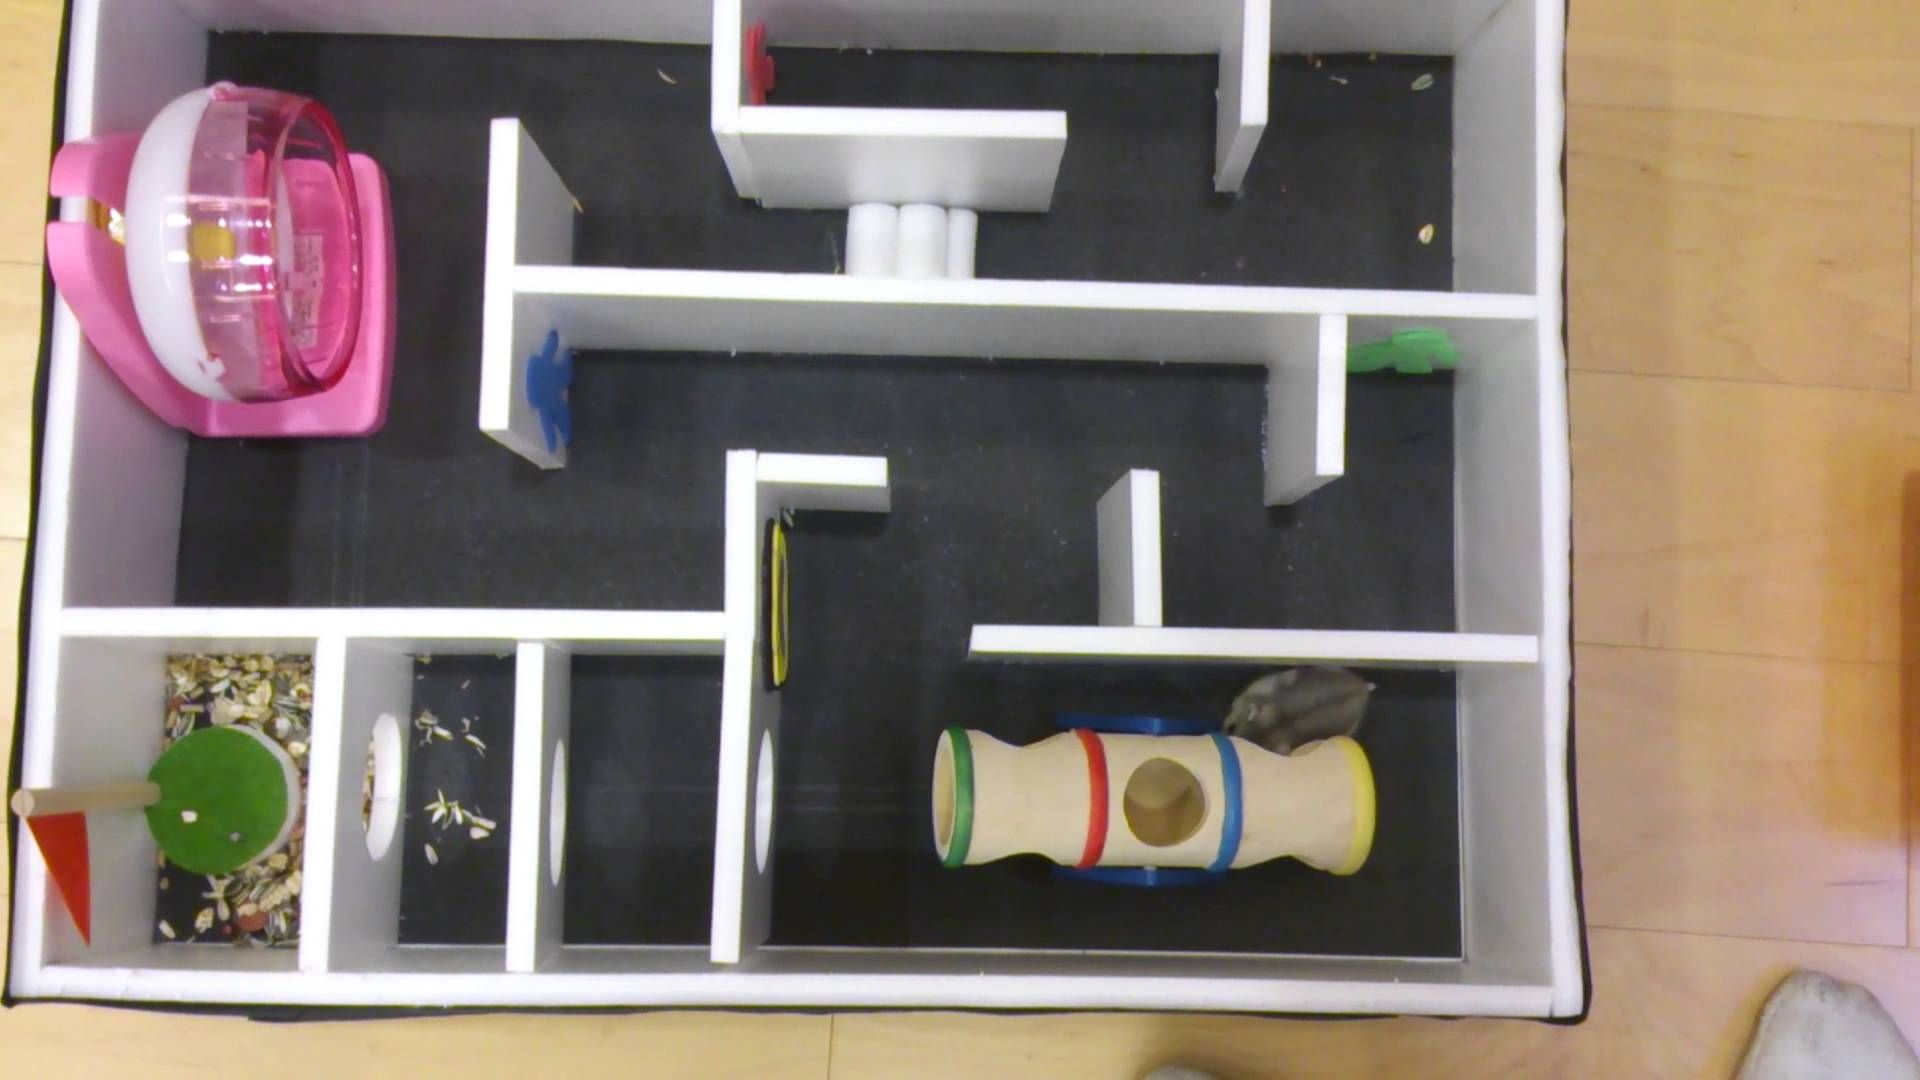 Dylan Tang Amp Danny Chen Hamster Maze 9th Grade Science Fair